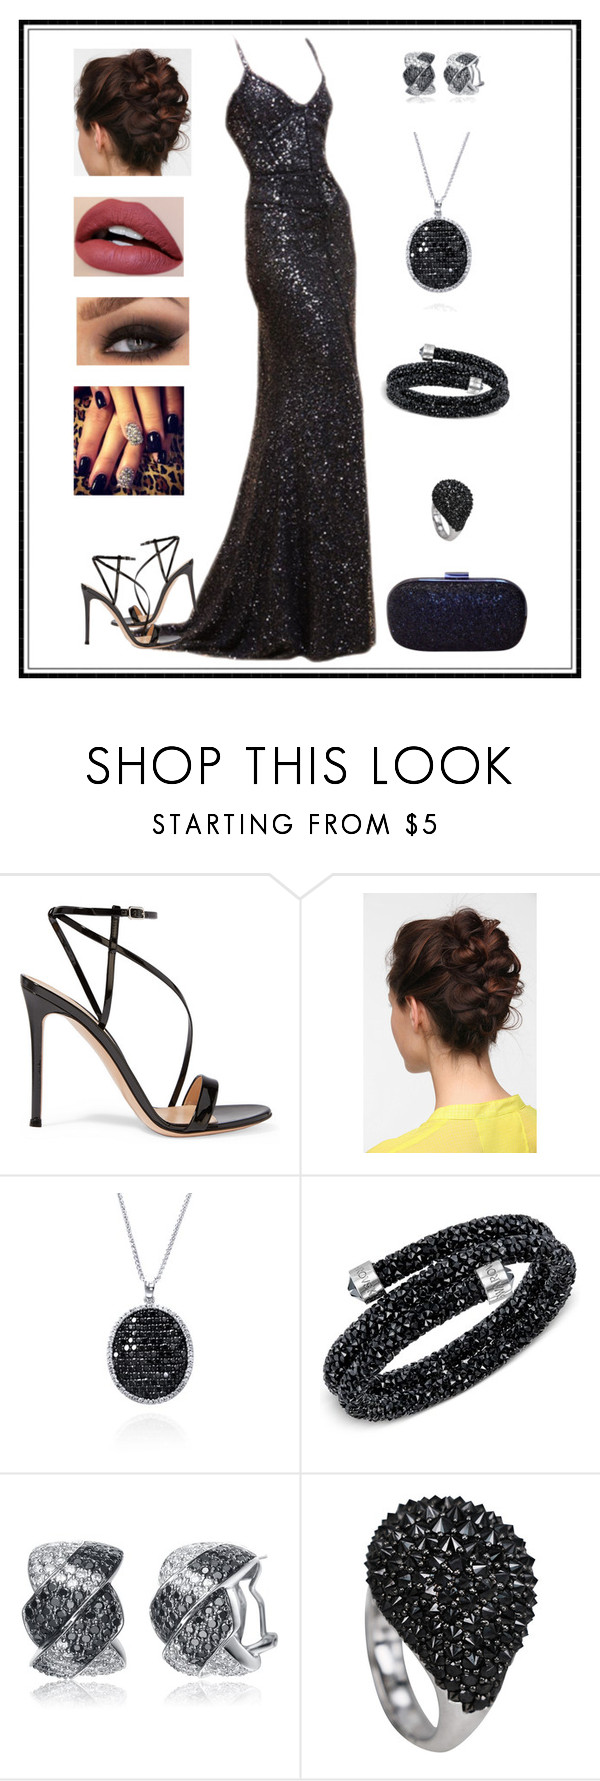 """""""Untitled # 224"""" by binasa87 ❤ liked on Polyvore featuring Gianvito Rossi, Effy Jewelry, Swarovski, Collette Z and Anya Hindmarch"""